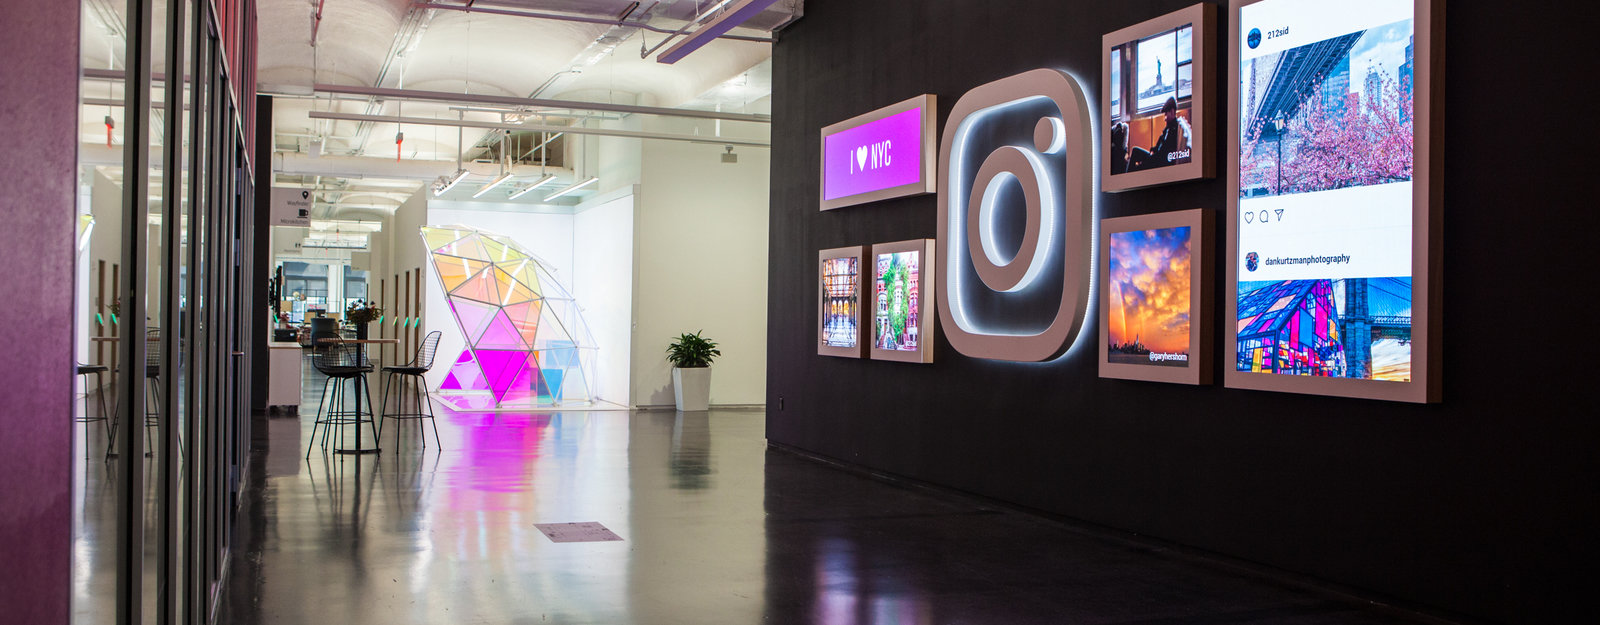 A Look Inside Instagram's New NYC Office - Core77